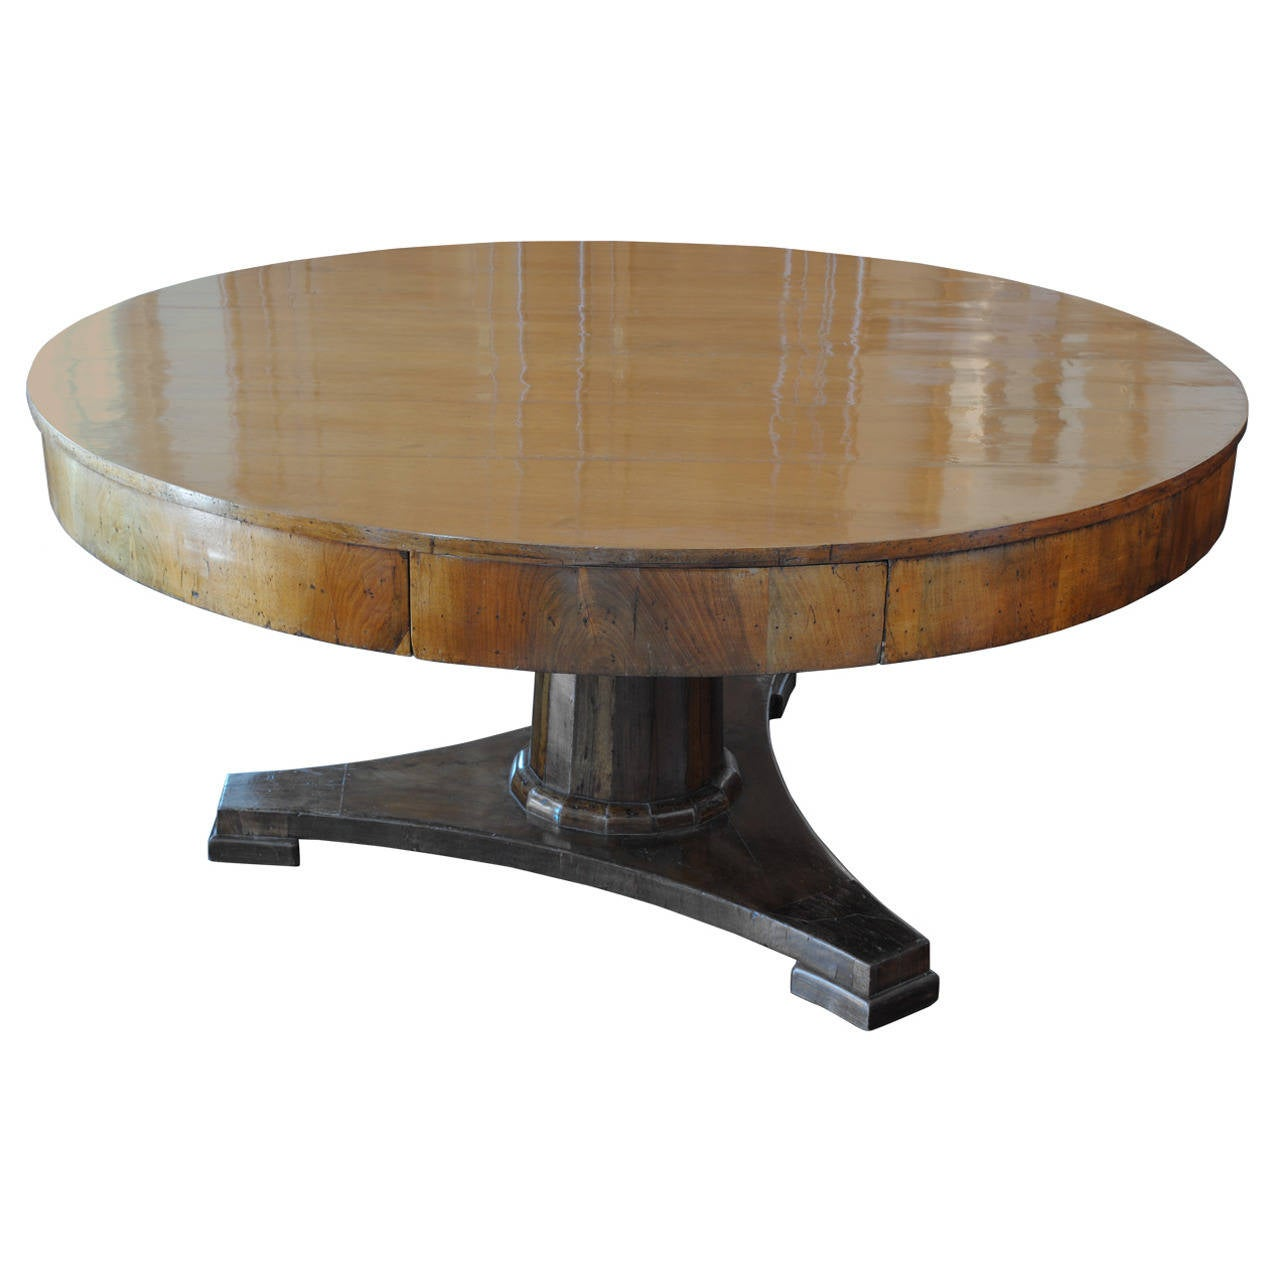 Massive Italian Veneto, Early 19th Century Walnut Center Table